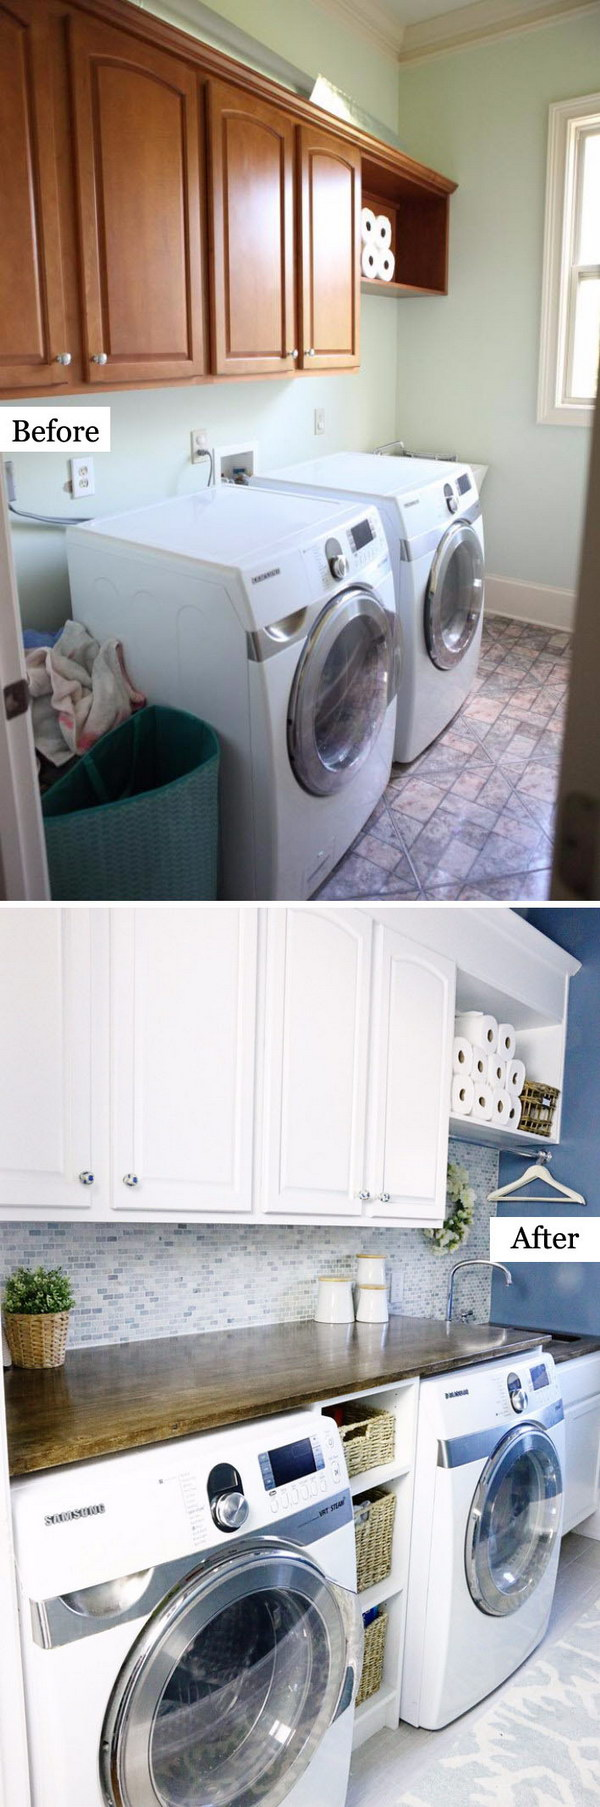 Laundry Room Makeover from Boring to Beautiful and Functional.